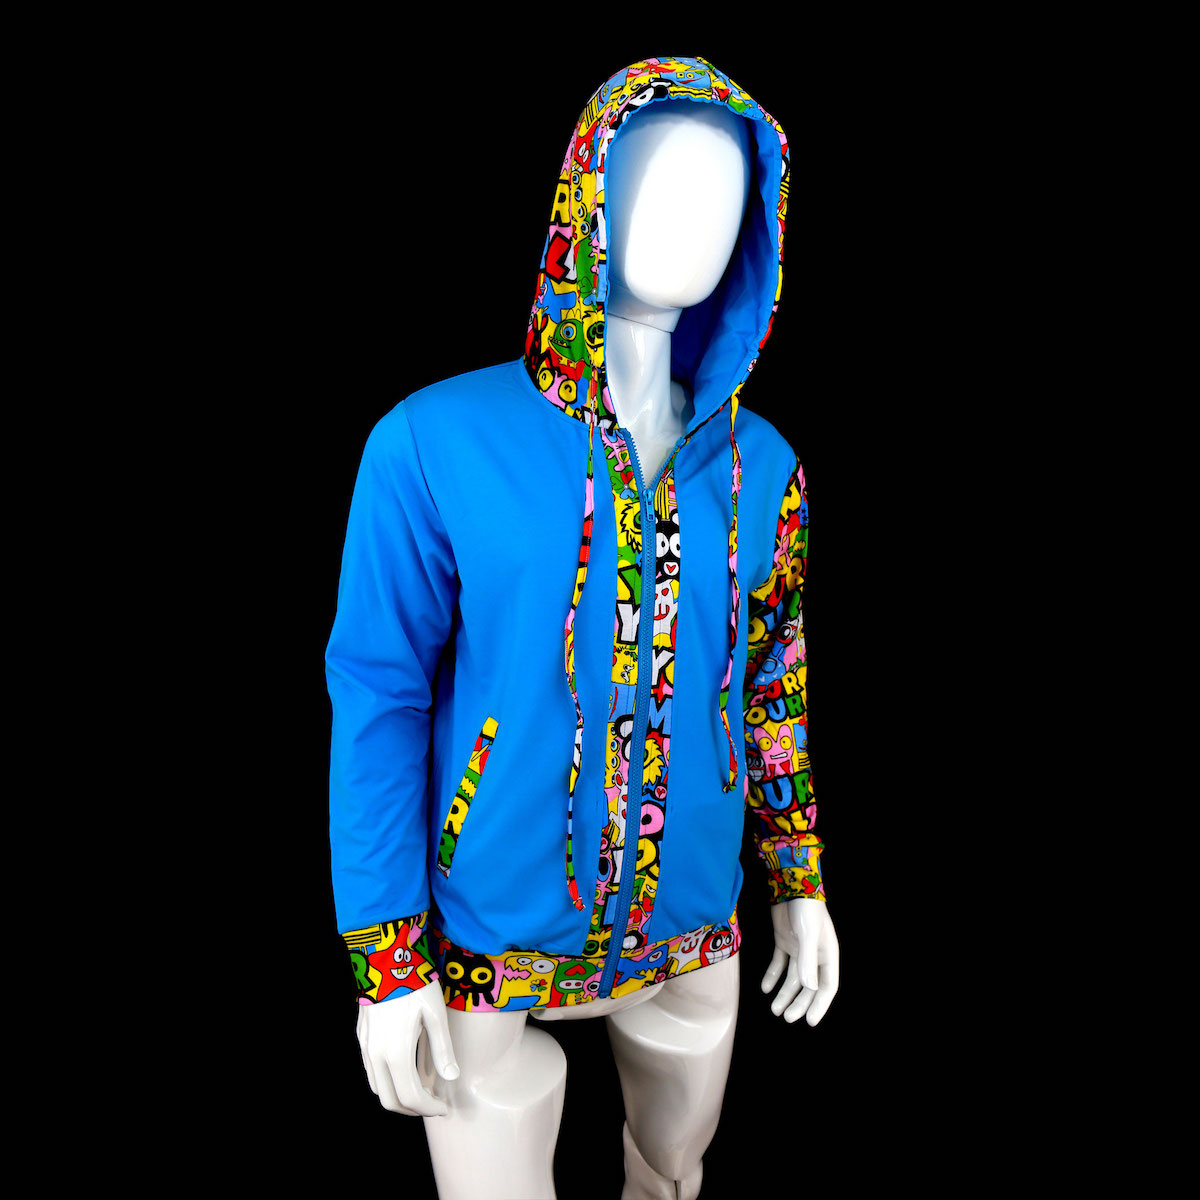 da8644fc Cool Hoodies for Men, Cool Unique Hoodies - YourMindYourWorld